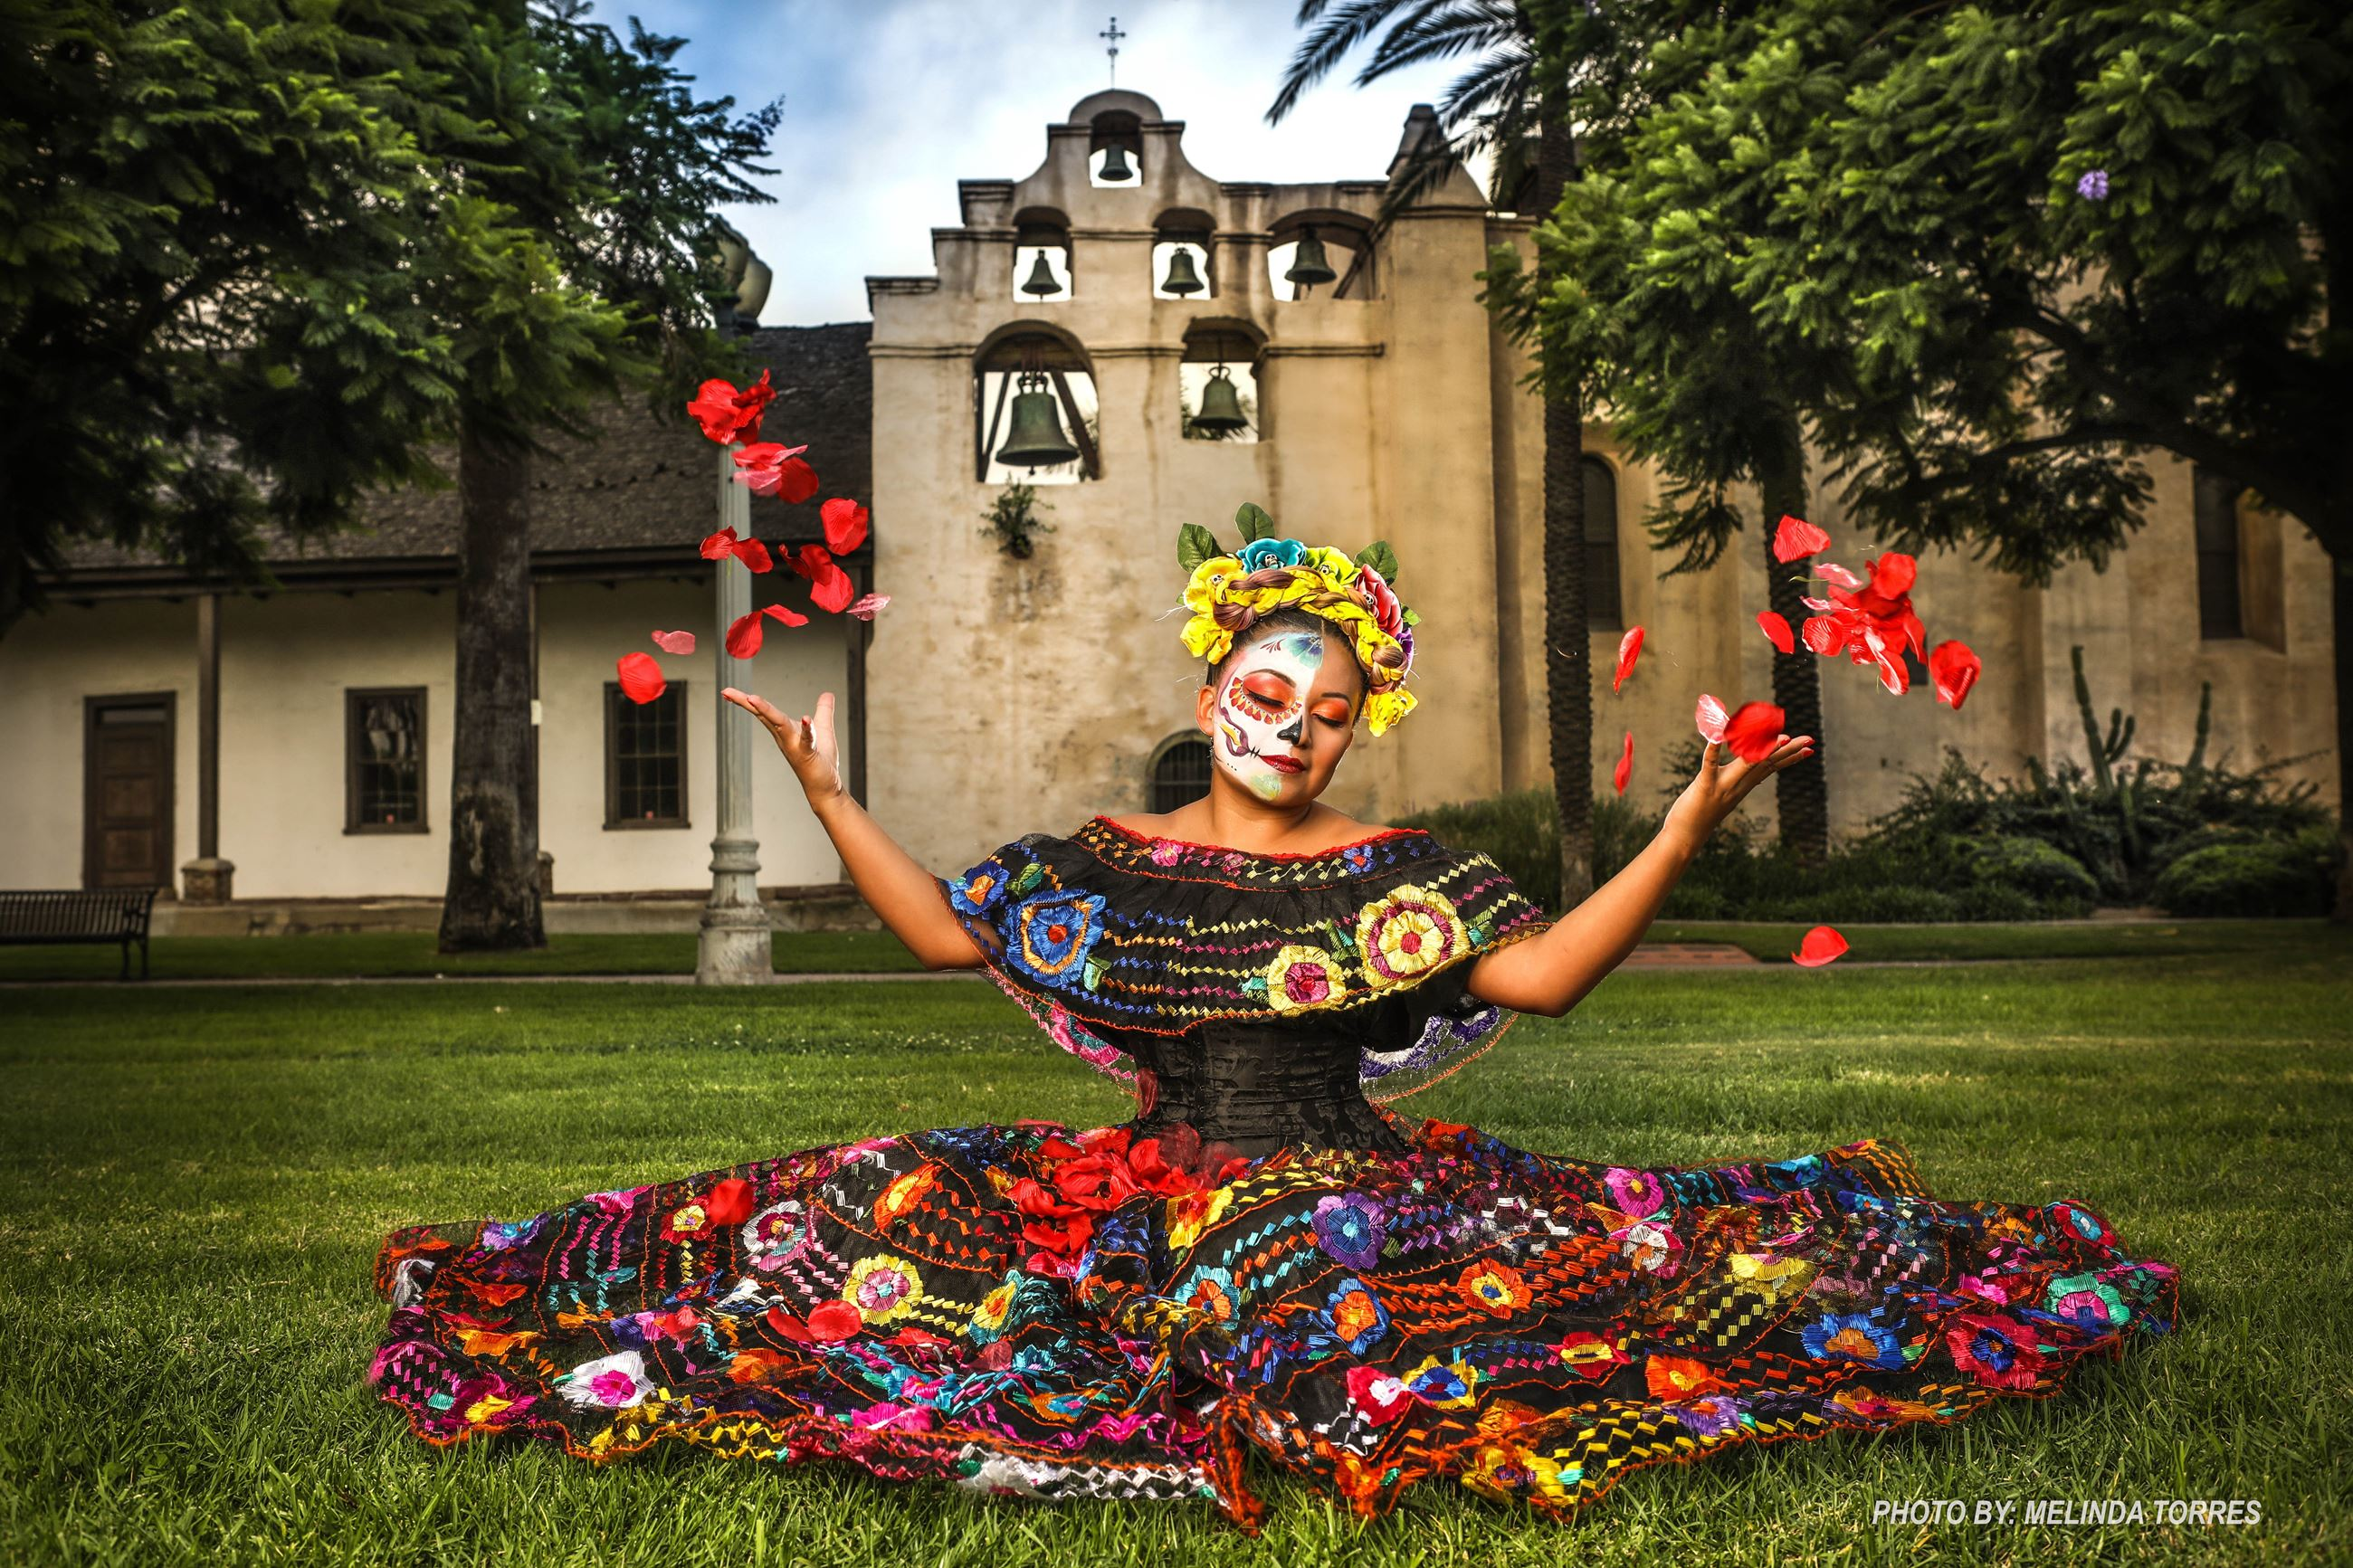 Woman wearing sugar skull make up and traditional dress throwing rose petals in the air